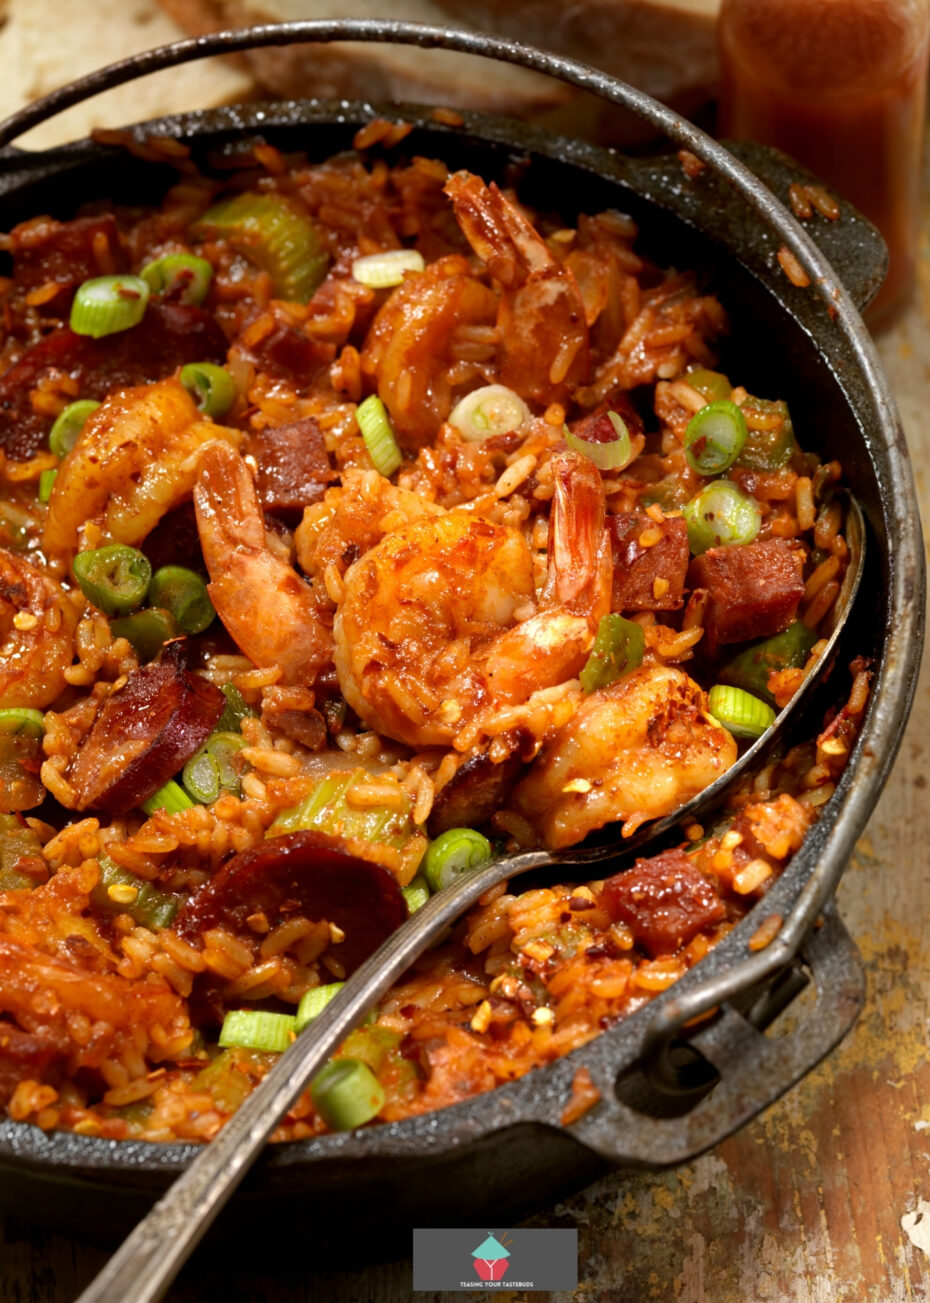 Homemade Jambalaya, a great family recipe, made from scratch. All in one rice dish with ham, smoked sausage, tomatoes and heaps of flavor. Serve as a dinner or pot lucks, parties